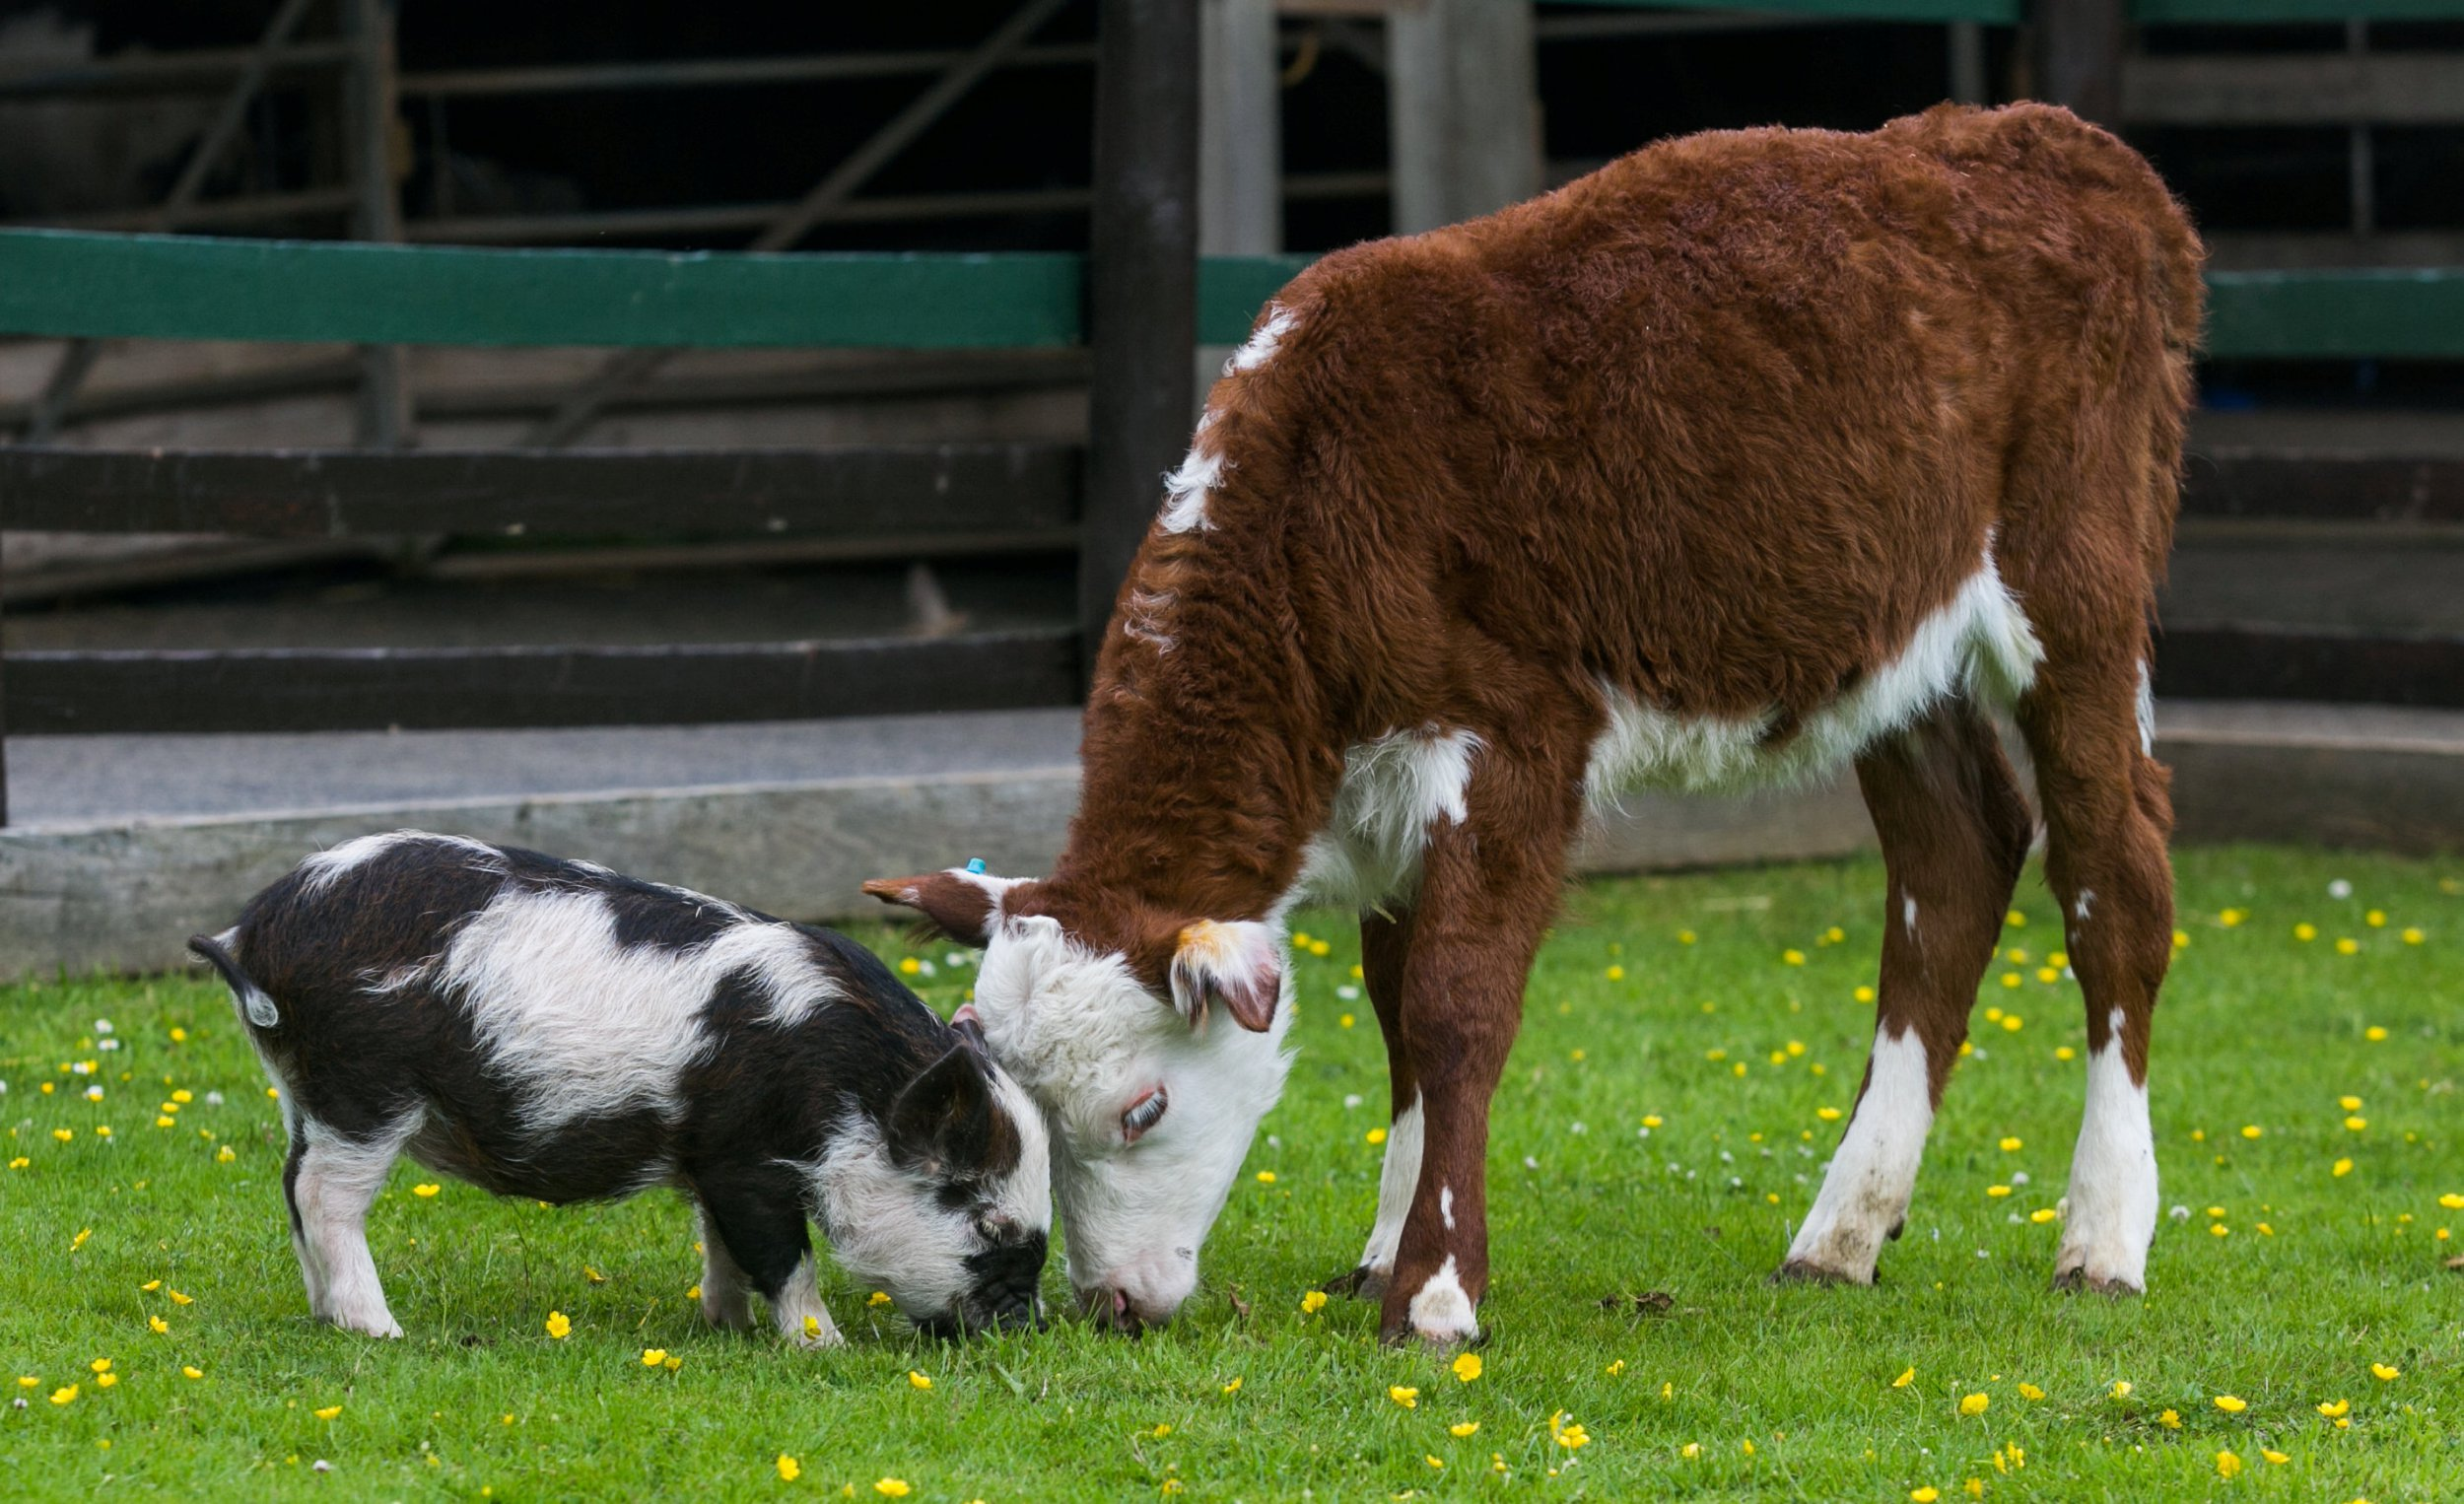 """4 week old Pennywell Miniature Piglet, Mr Sparkles has taken to 12 week old Hereford calf Dainty and the two have become best friends at the Pennywell Farm in Devon. See SWNS story SWFRIENDS; This adorable picture shows the unusual pairing of a cow and a pig at a popular tourist attraction. Mr Sparkles, a 14-week-old miniature piglet was having trouble sleeping at the animal farm, until he met 12-week-old Hereford calf Dainty. The pair, who were both born underweight, instantly hit it off and became firm friends. Now, staff at Pennywell Farm have to keep a close eye on Mr Sparkles as he escapes to be with his best bud Dainty at every opportunity. Chris Murray, 67, co-owner of the farm attraction, said: """"Dainty was small when she was born, she was tiny, that's why she's called Dainty."""